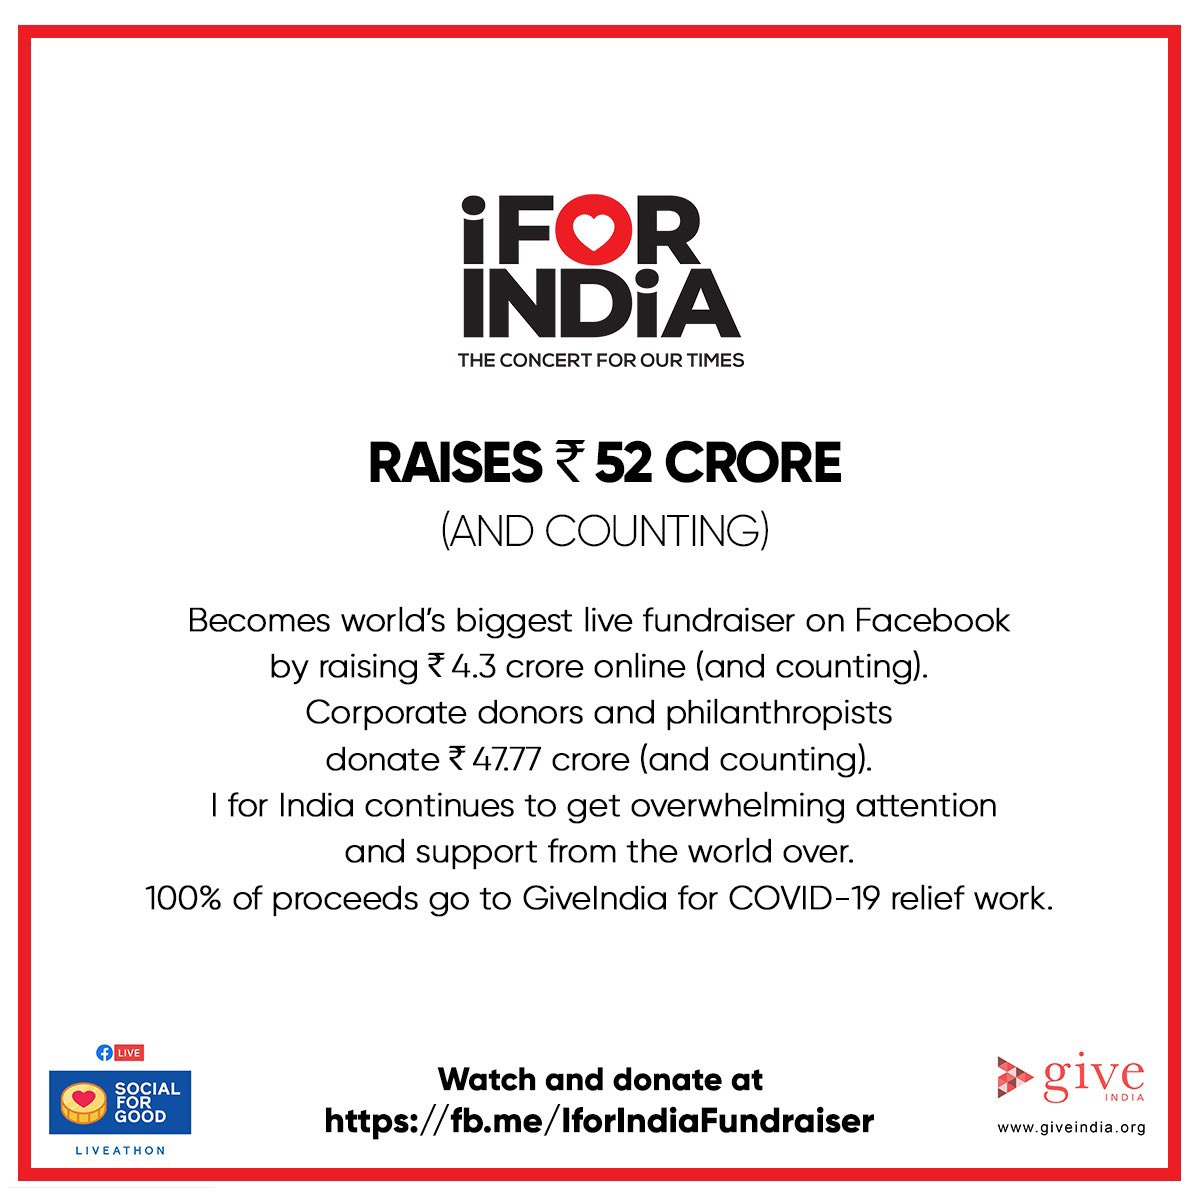 From our hearts to yours. Thank you for watching. Thank you for responding. Thank you for donating. #IForIndia started out as a concert. But it can be a movement. Let's continue to build a safe,healthy & strong India. I For India. Please donate   @GiveIndia